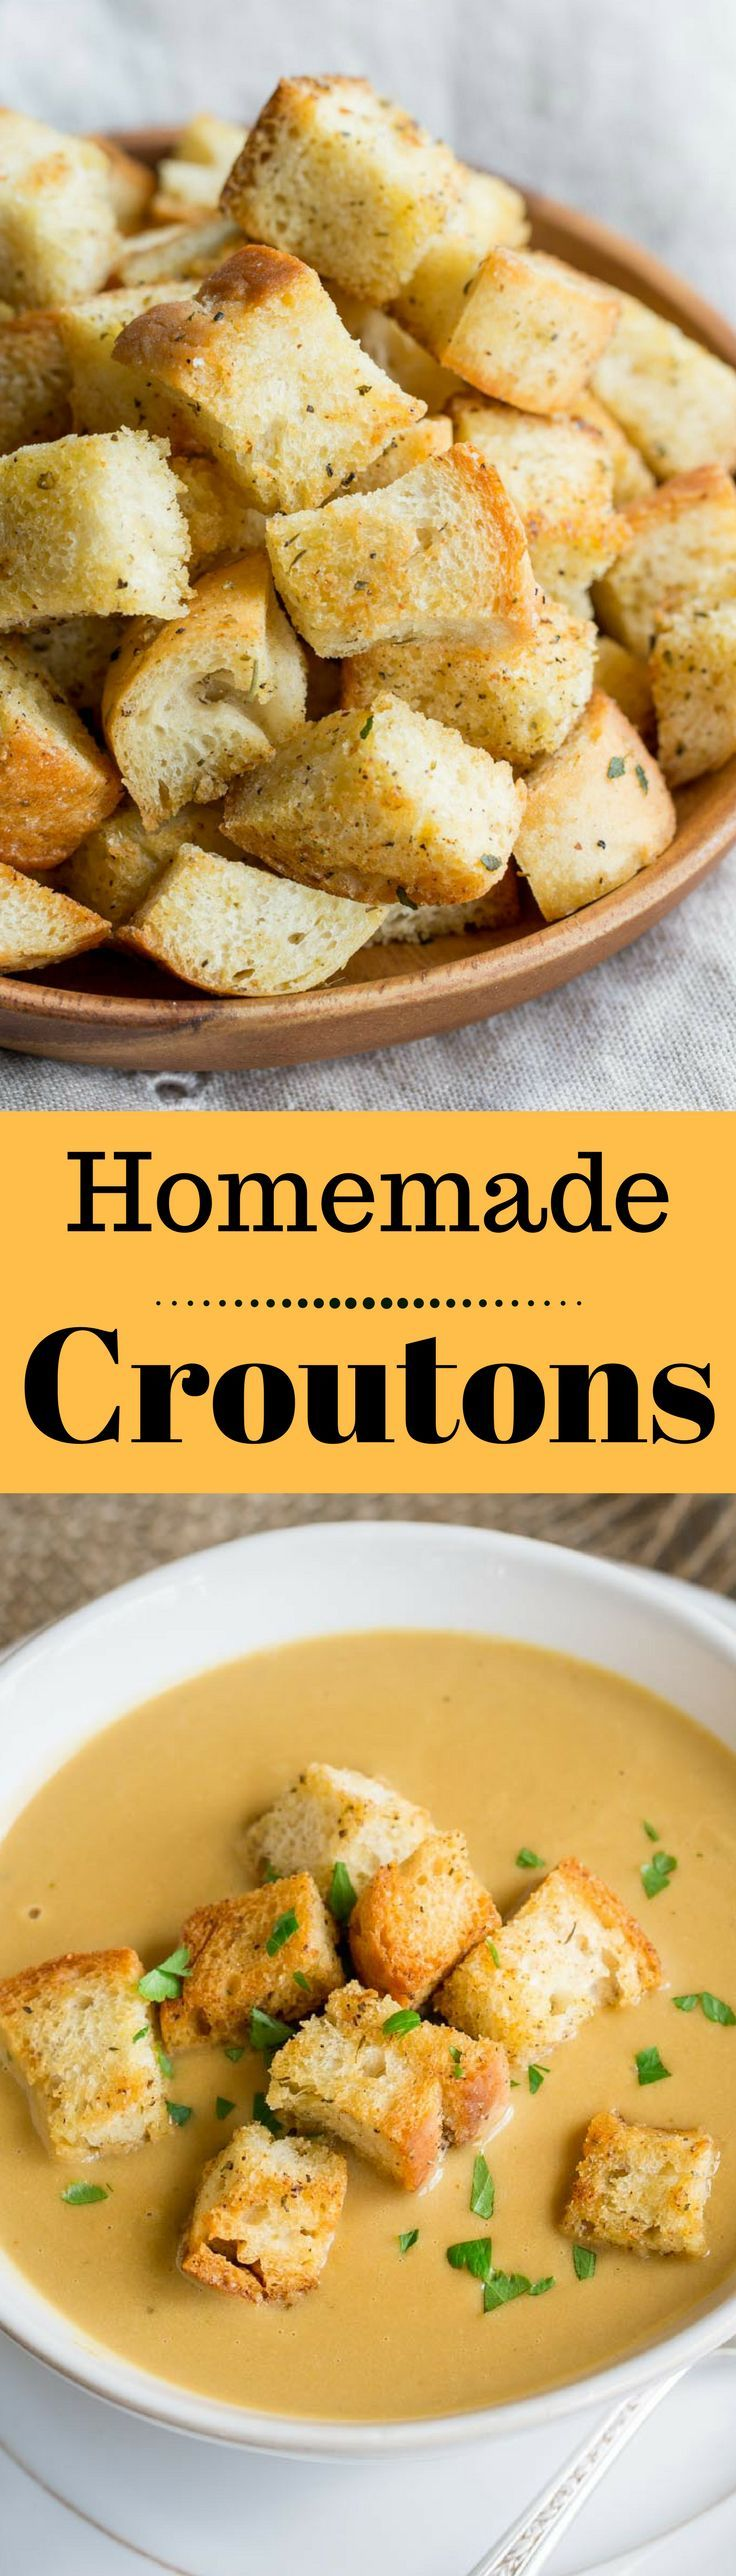 Homemade Croutons - Crispy, garlic and herb flavored Homemade Croutons - you may never want store bought again! www.savingdessert.com